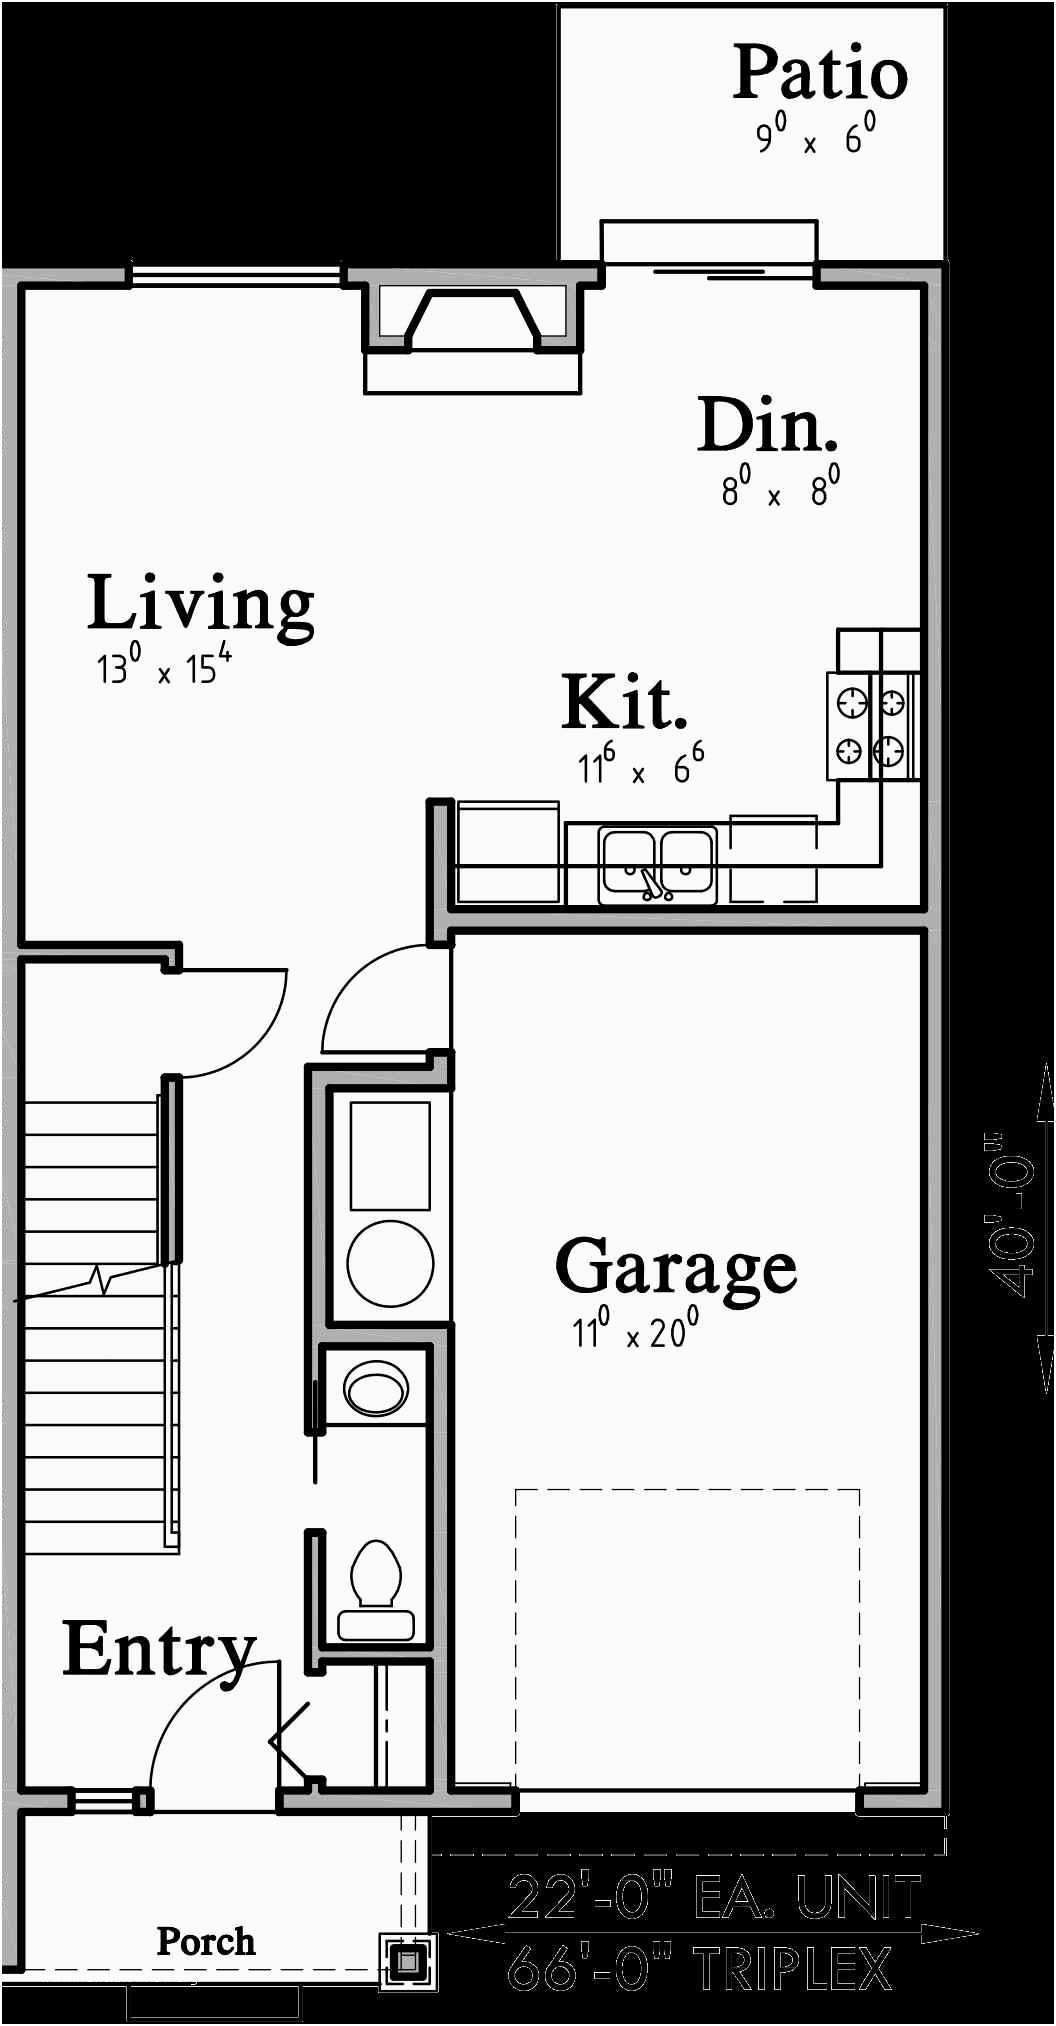 Best Luxury Home Floor Plans (With images) | Free house ...